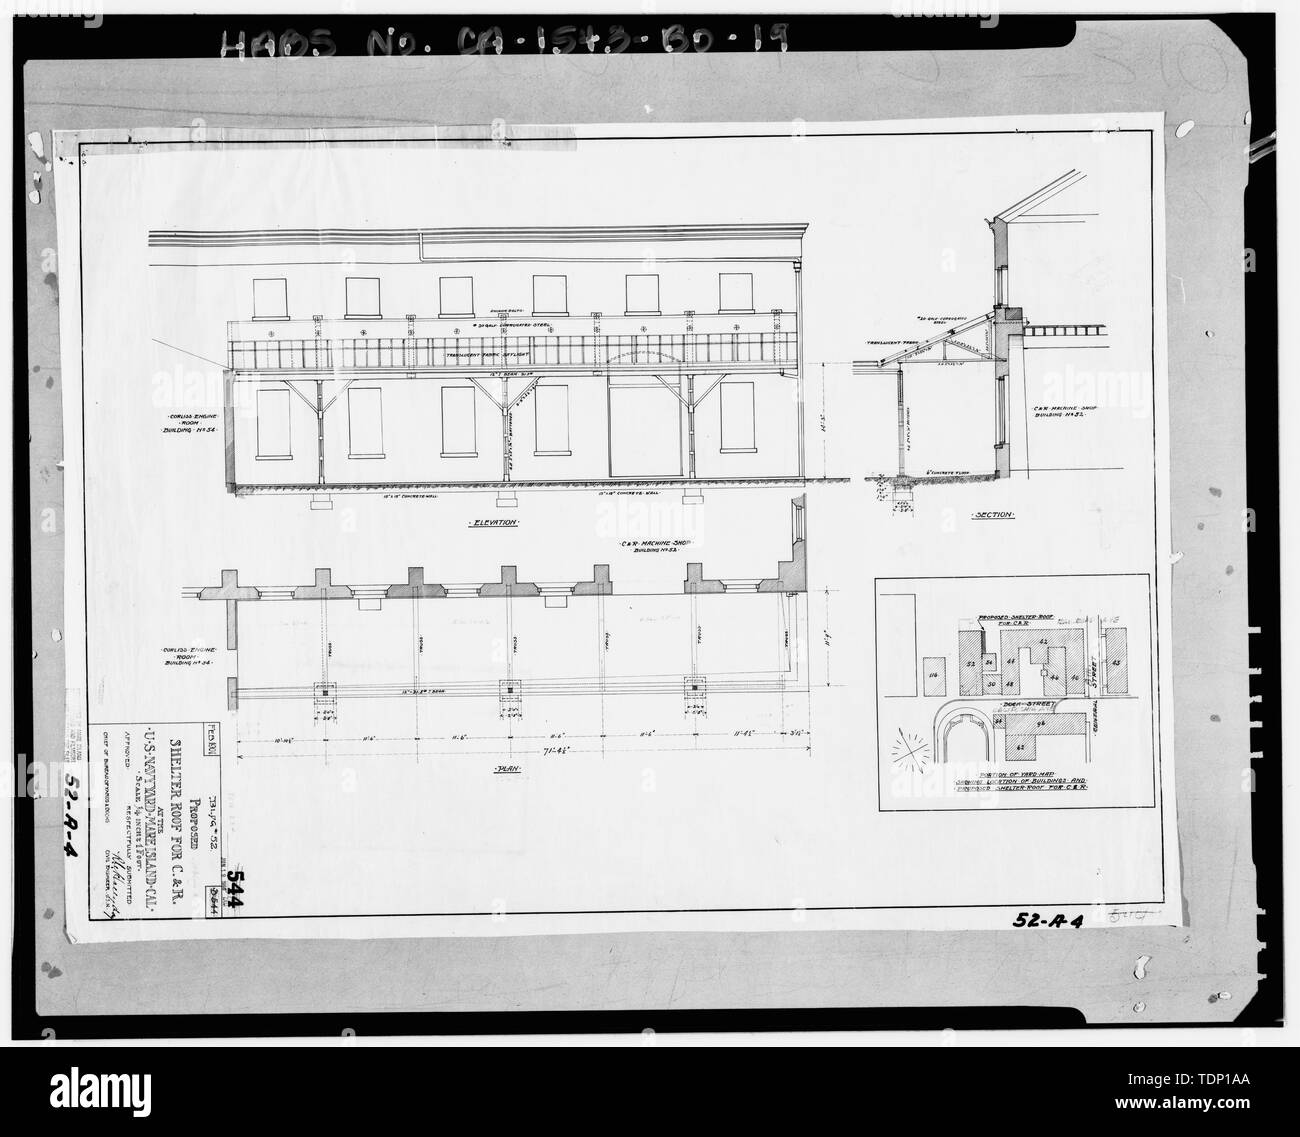 Cal 52 Stock Photos & Cal 52 Stock Images - Alamy M A Wiring Diagram Instrument Panel on